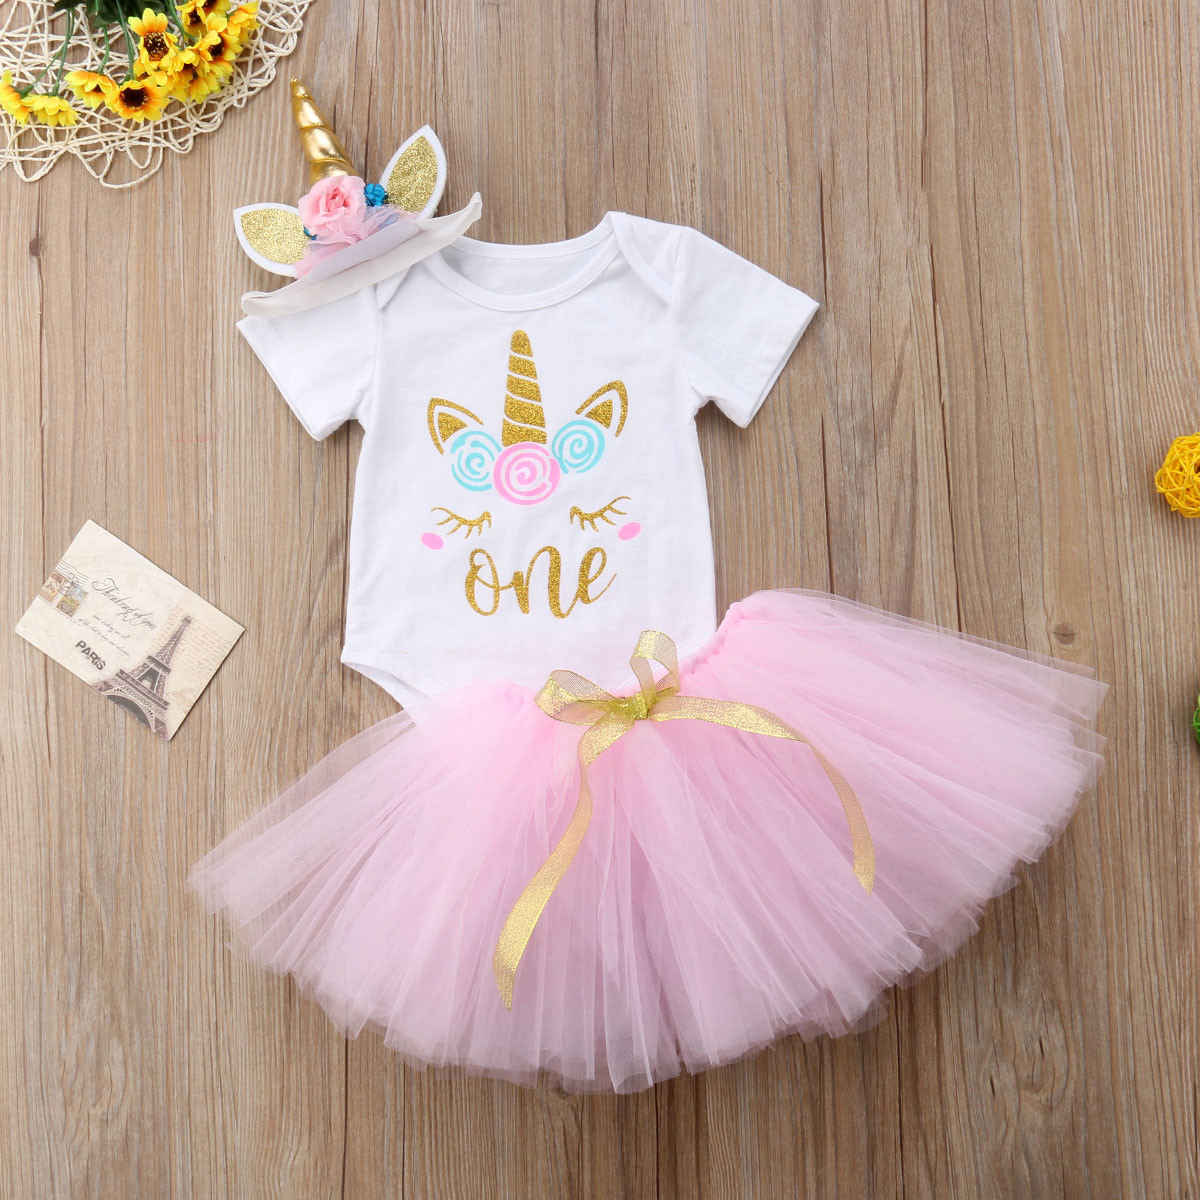 009ec9277 Detail Feedback Questions about Newborn Kid Baby Girls Unicorn Short ...